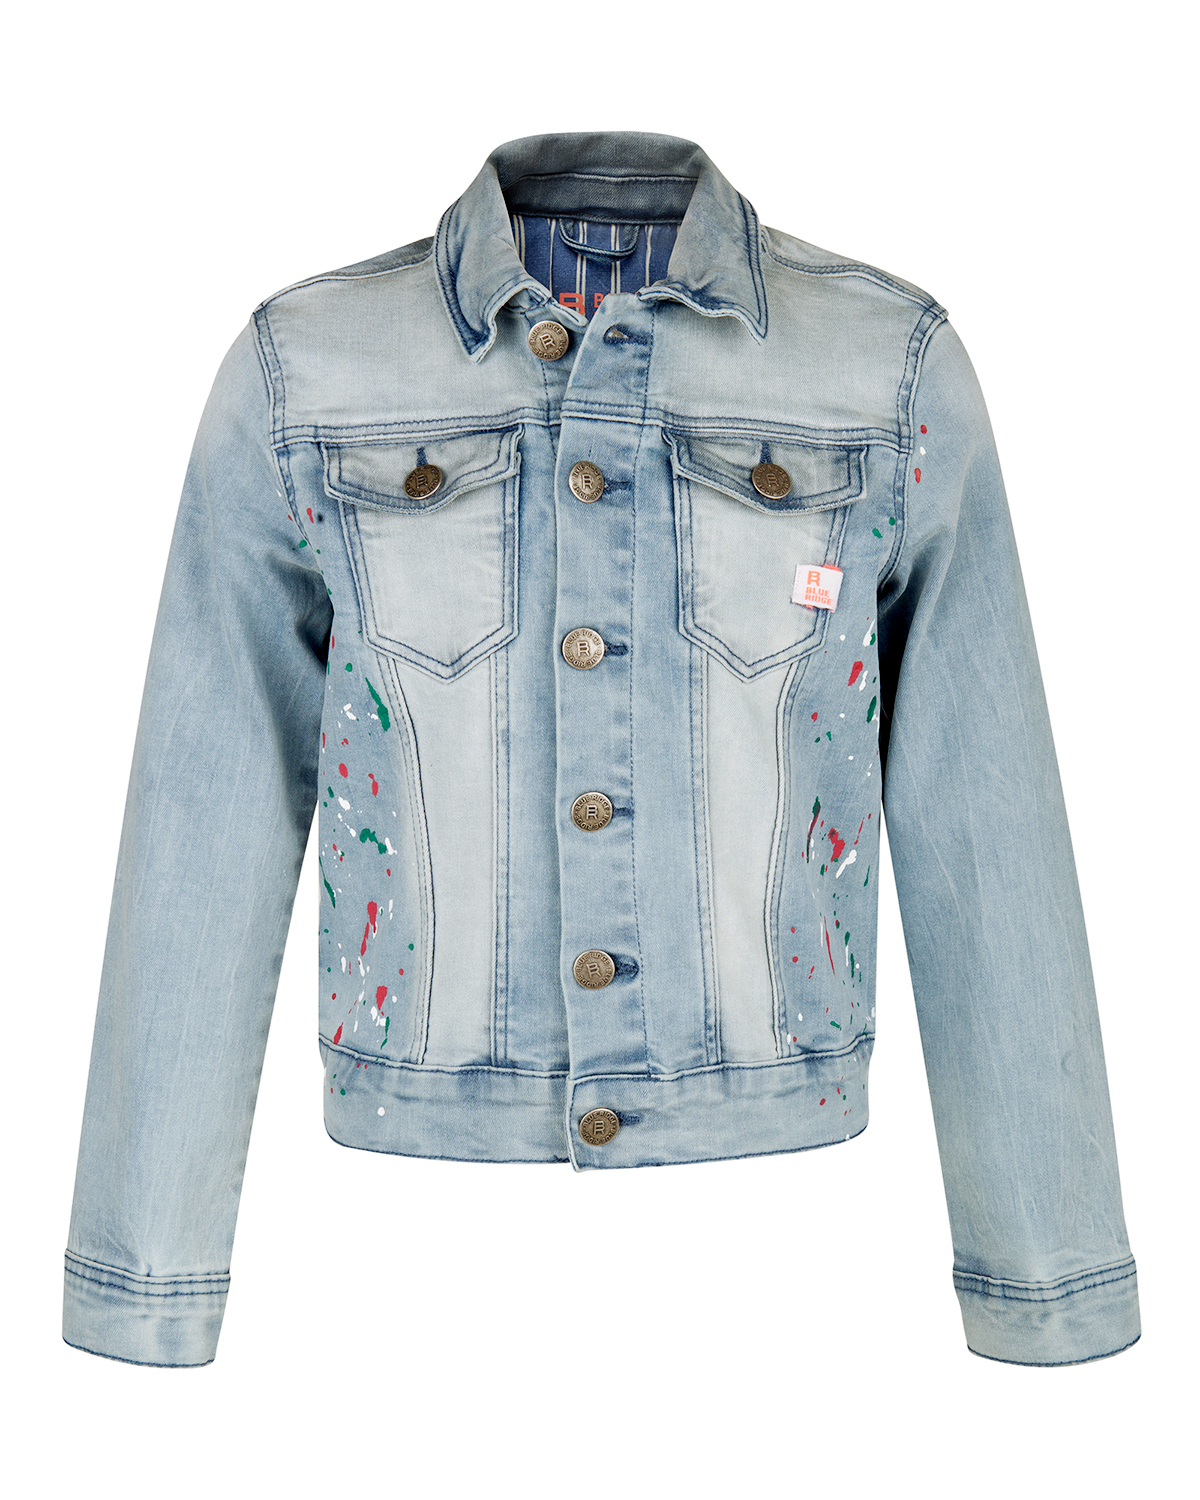 MEISJES SPLASHES DENIM JACKET | 80484875 WE Fashion